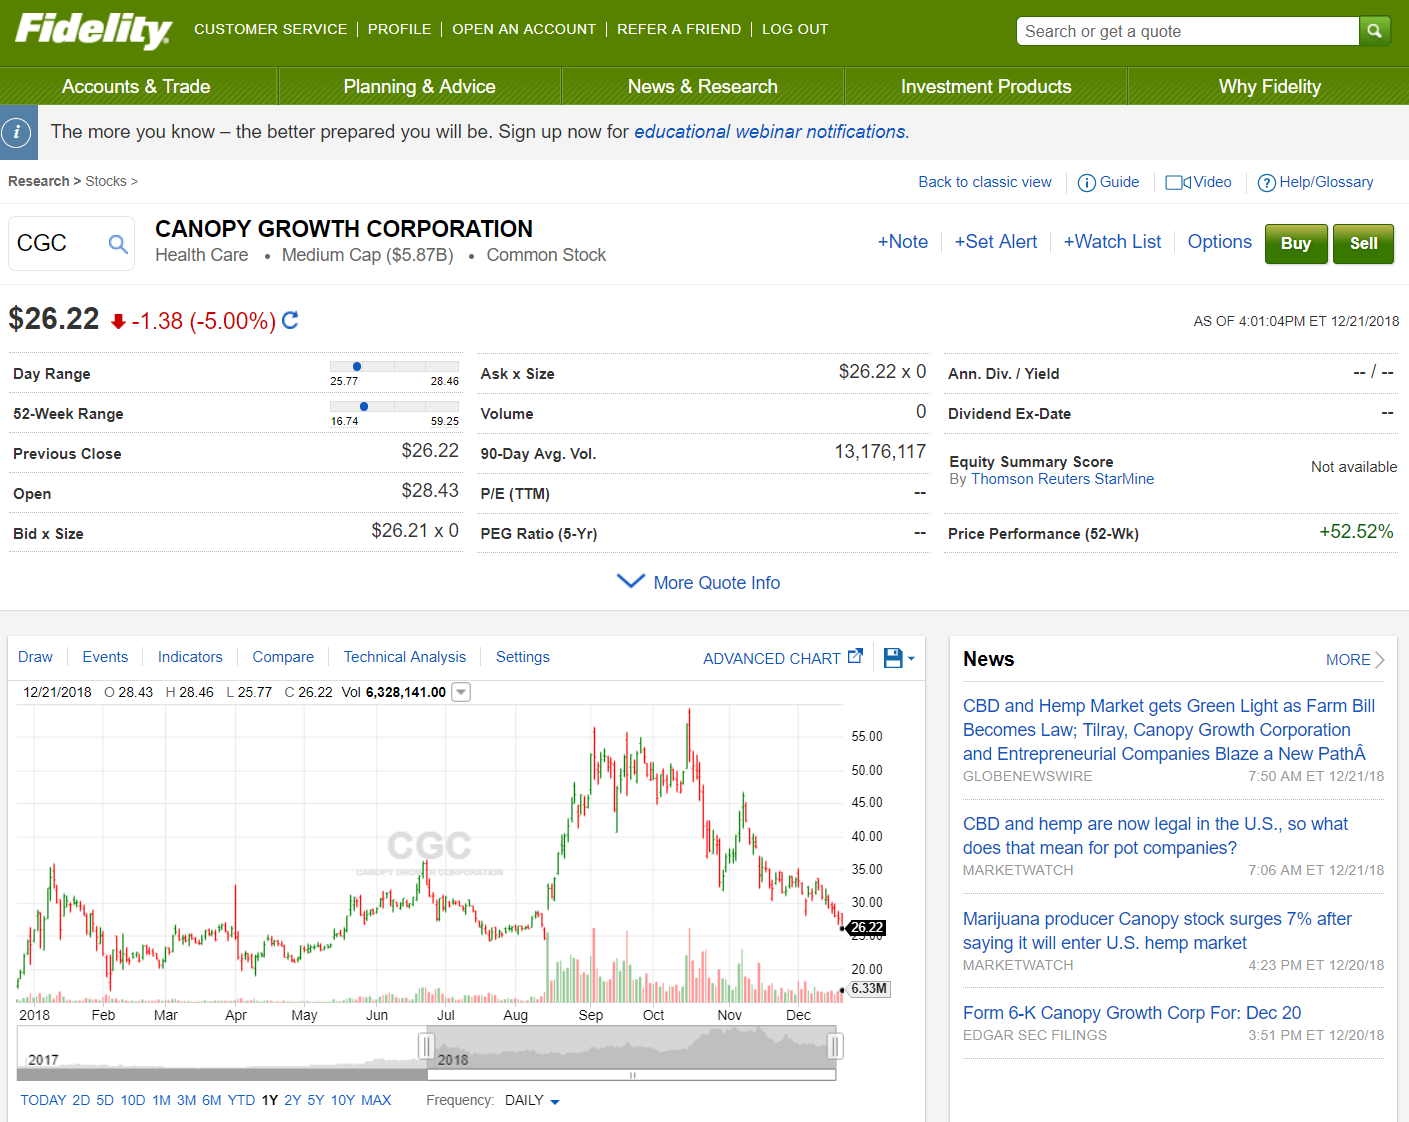 Fidelity Cannabis Stocks and Buying Canadian Stocks 2019